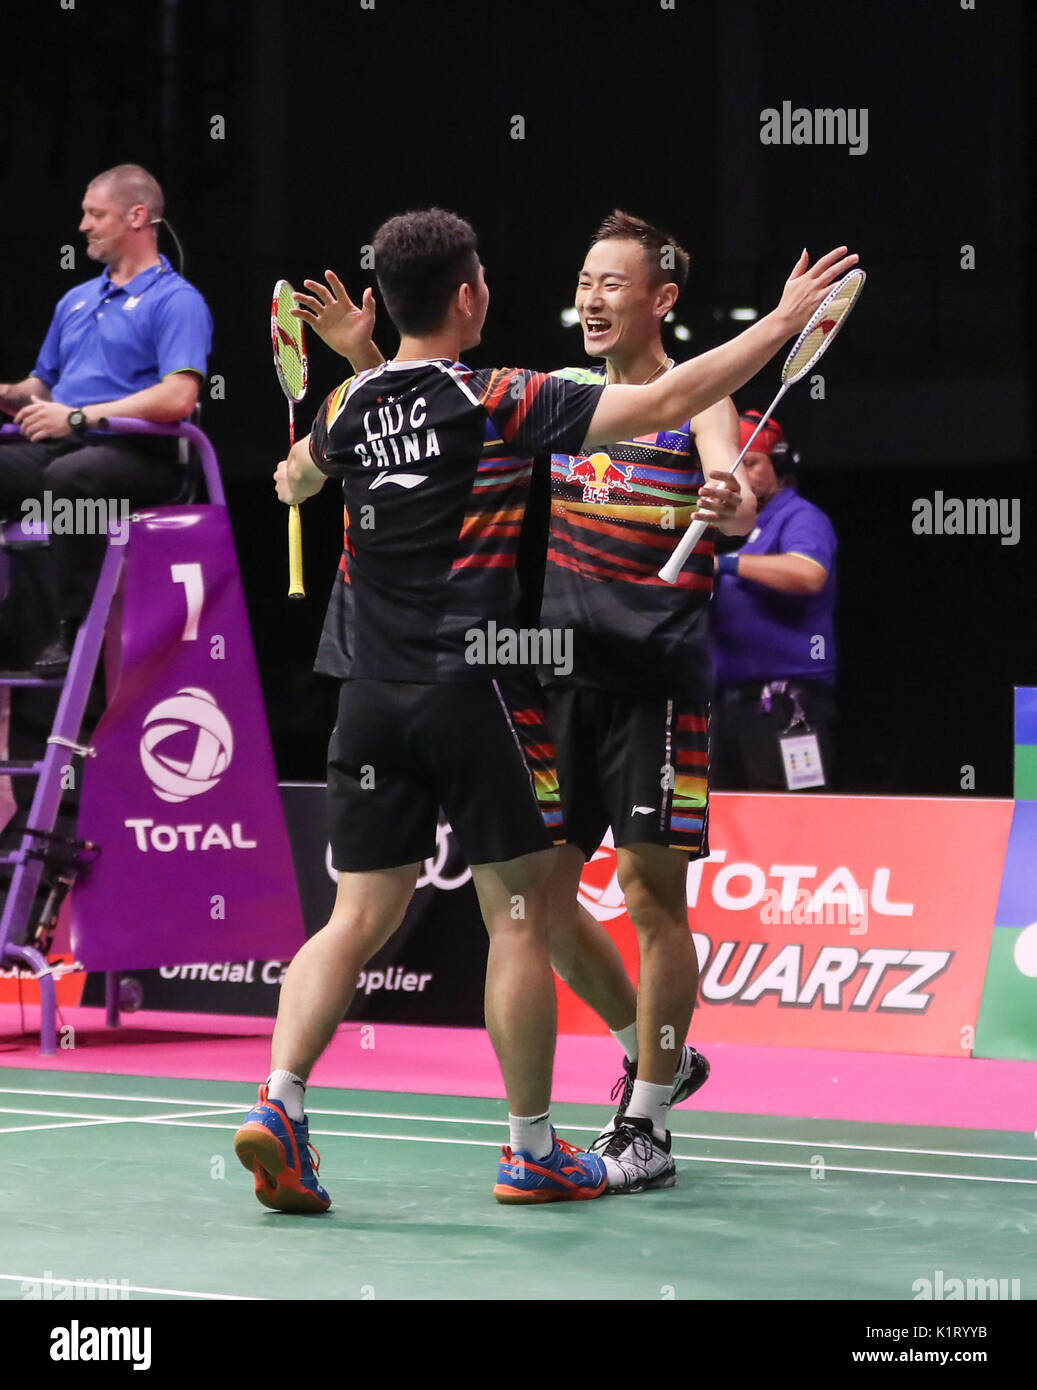 Glasgow Britain 27th Aug 2017 Liu Cheng L and Zhang Nan of